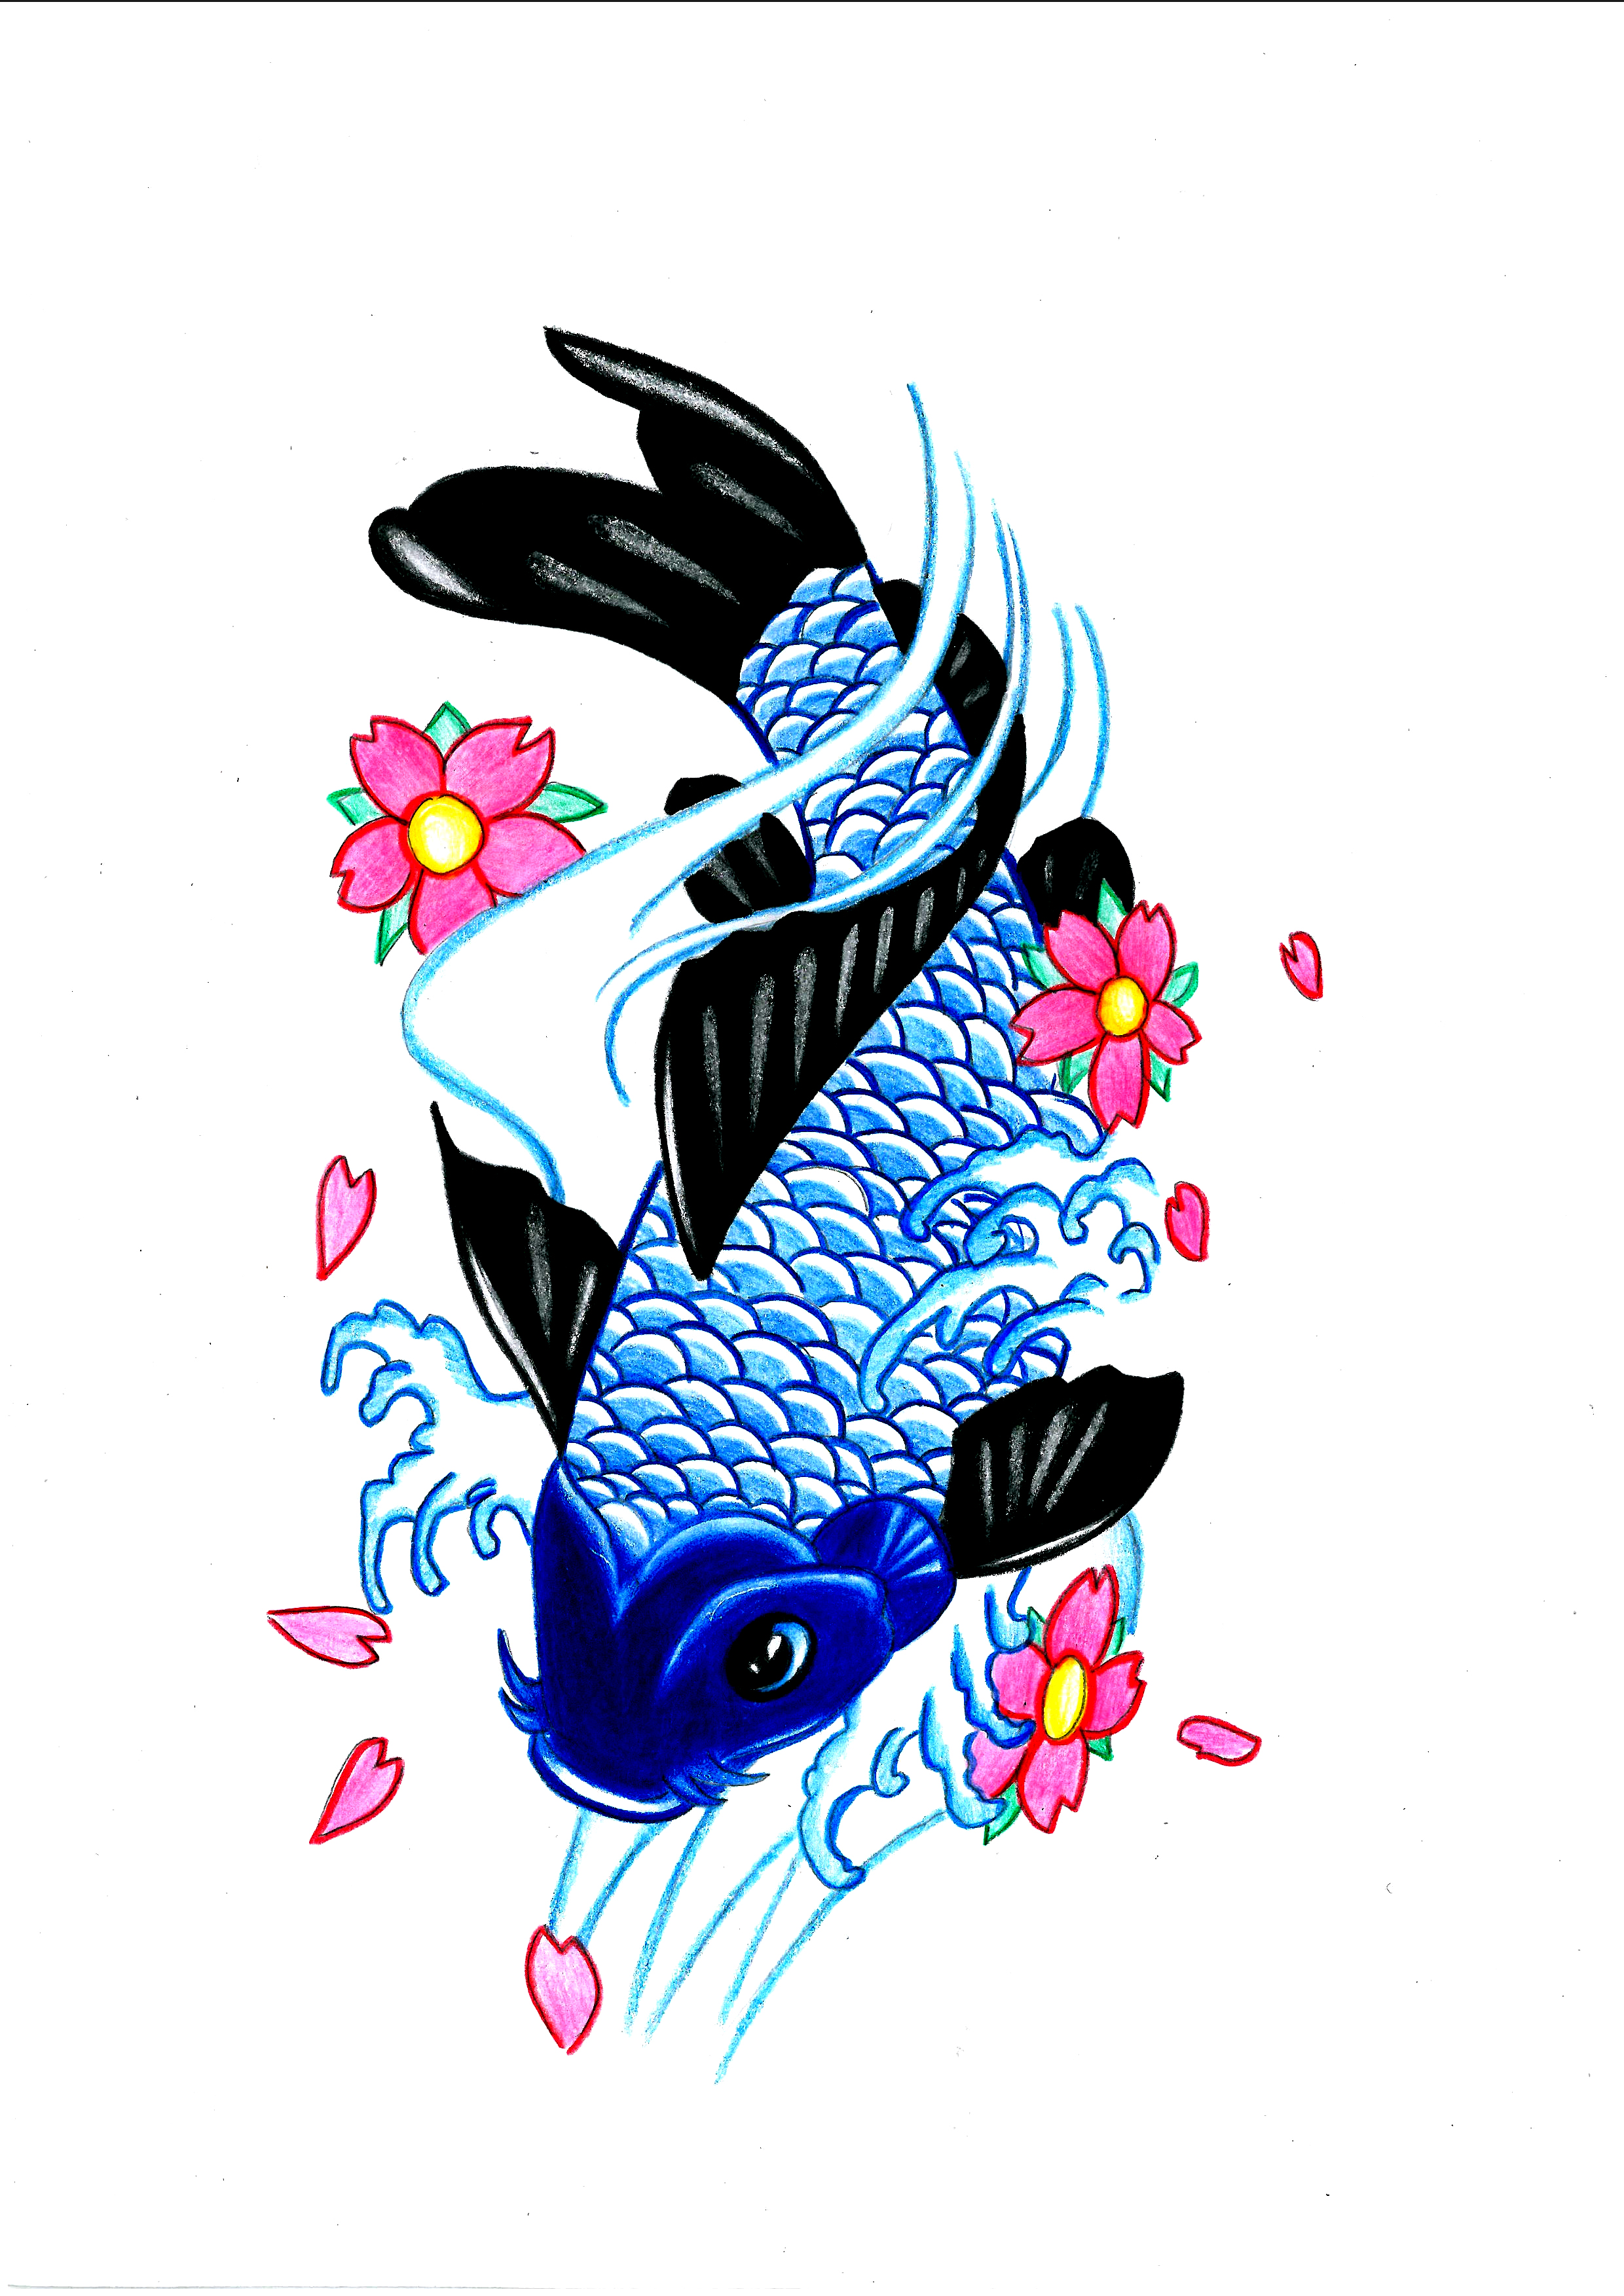 Koi fish by flxrence on deviantart for Koi fish artists